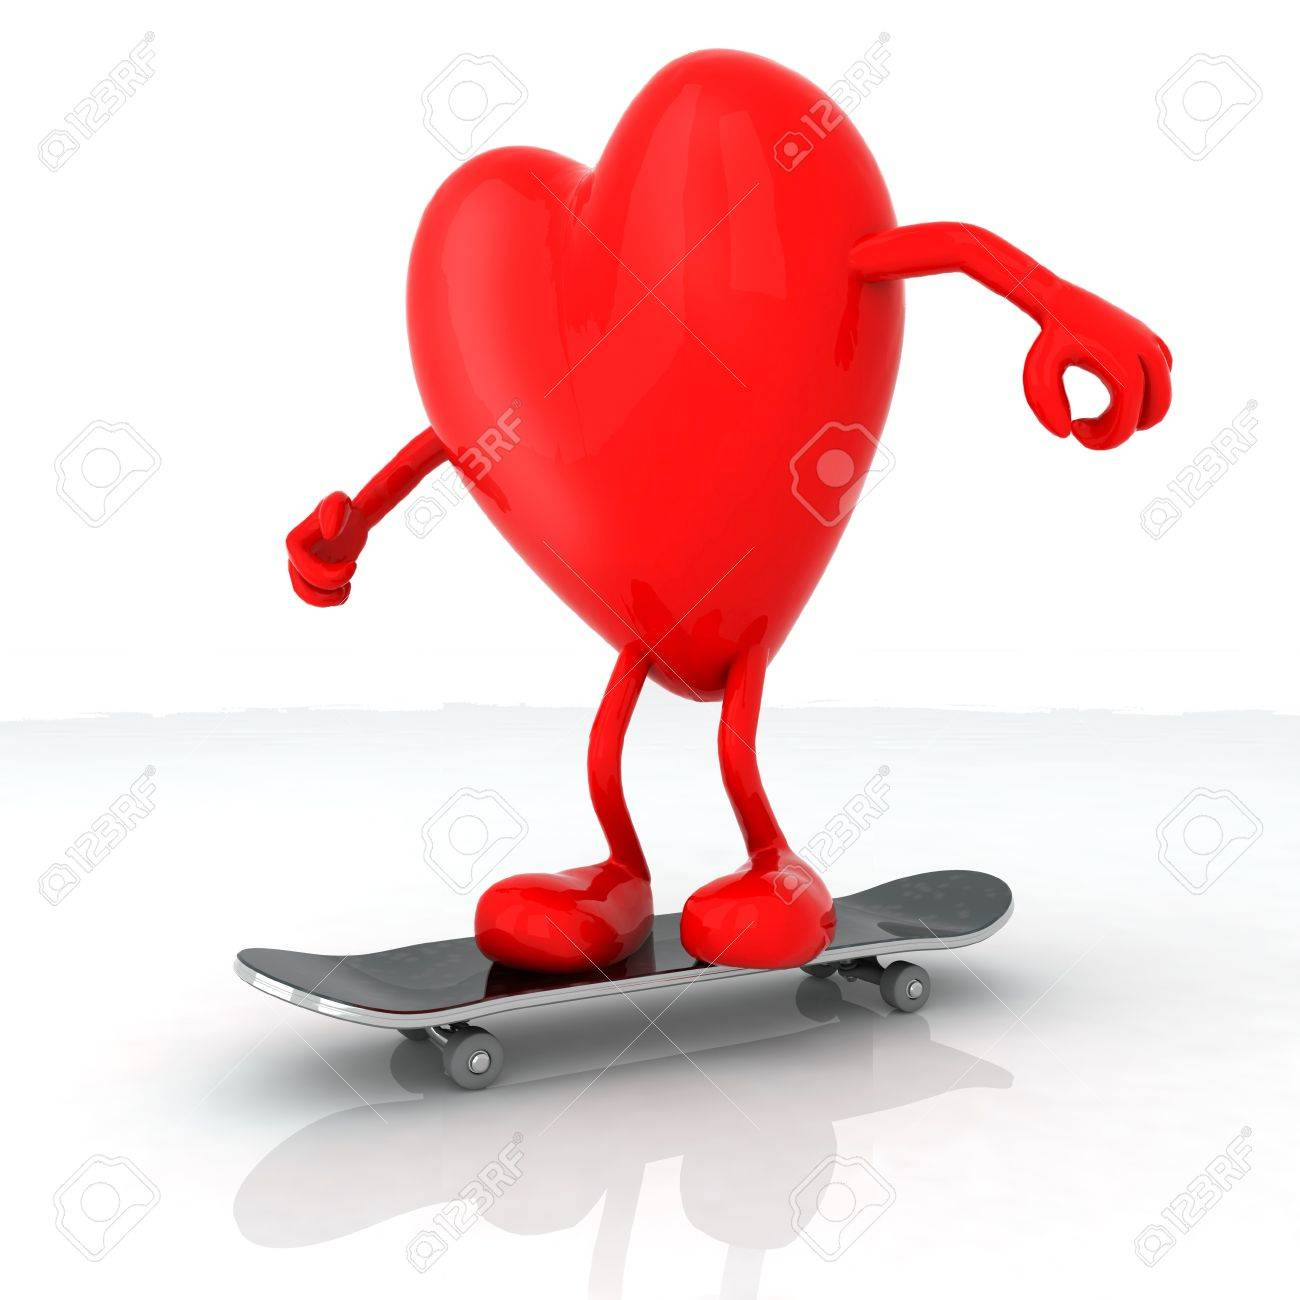 c94f4e86 heart with arms and legs on skateboard, 3d illustration Stock Illustration  - 21855060